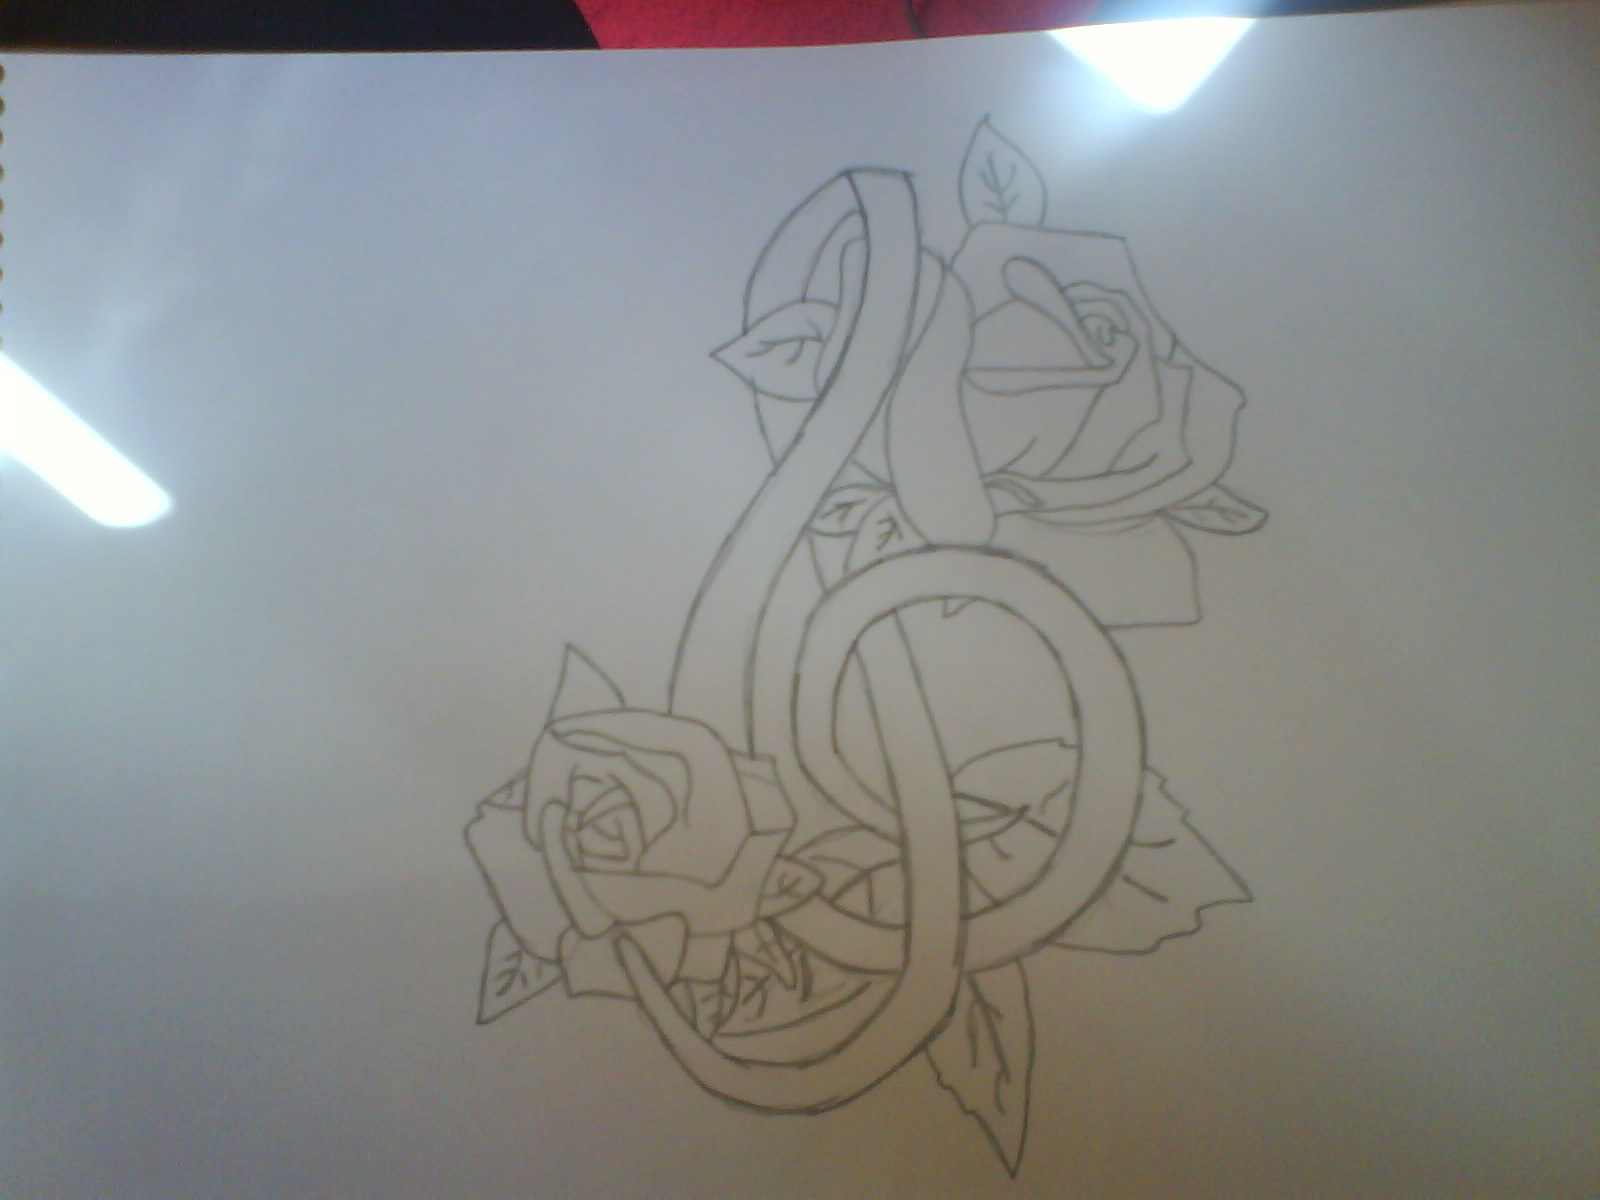 Music symbol and roses tattoo by plaistowkidd on deviantart music symbol and roses tattoo by plaistowkidd biocorpaavc Image collections